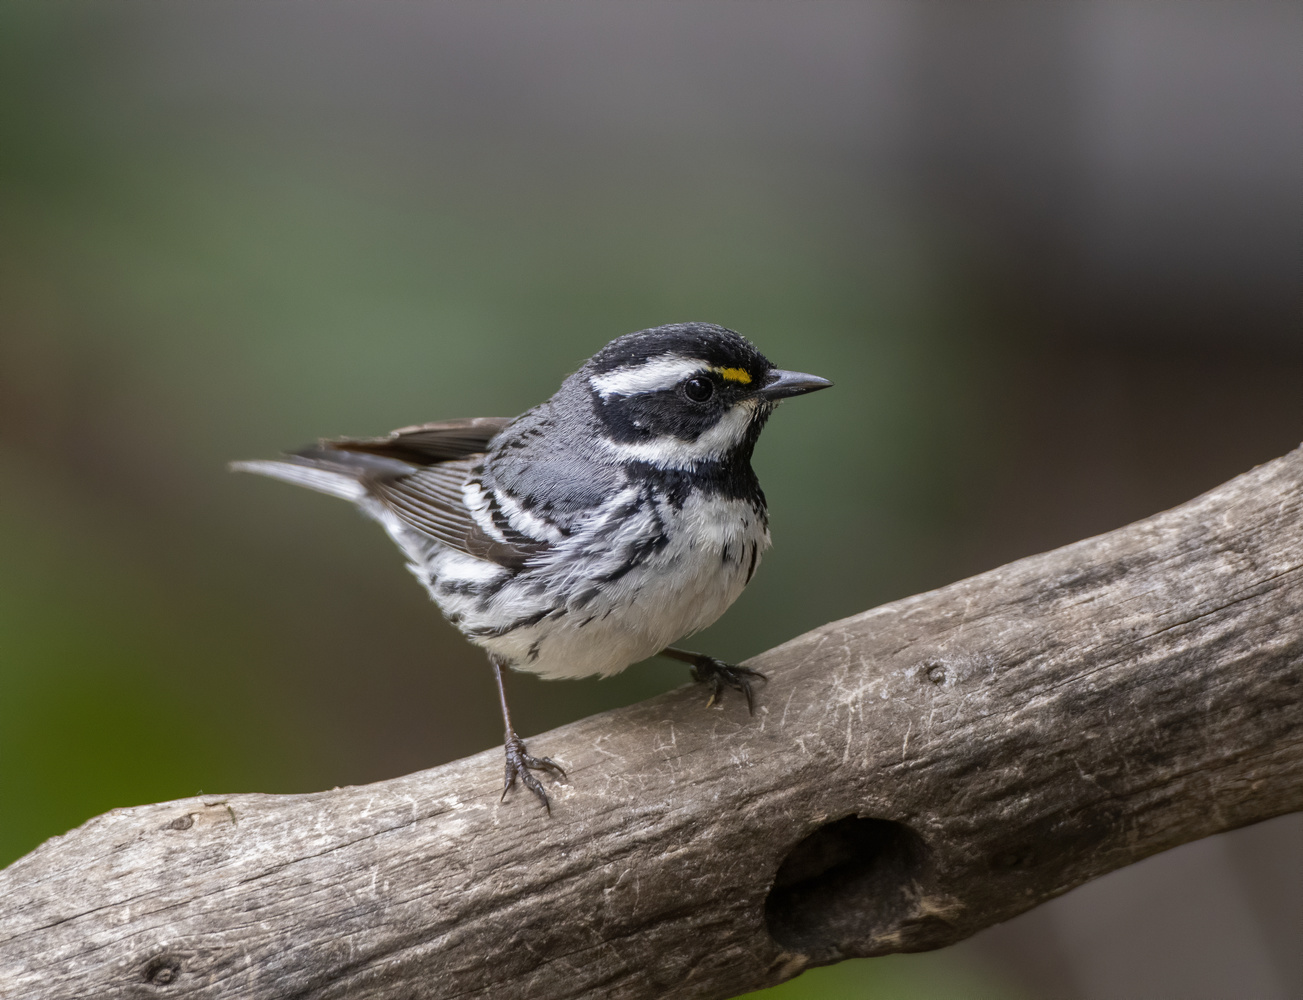 Black-throated gray warbler by Nickolas Thurston